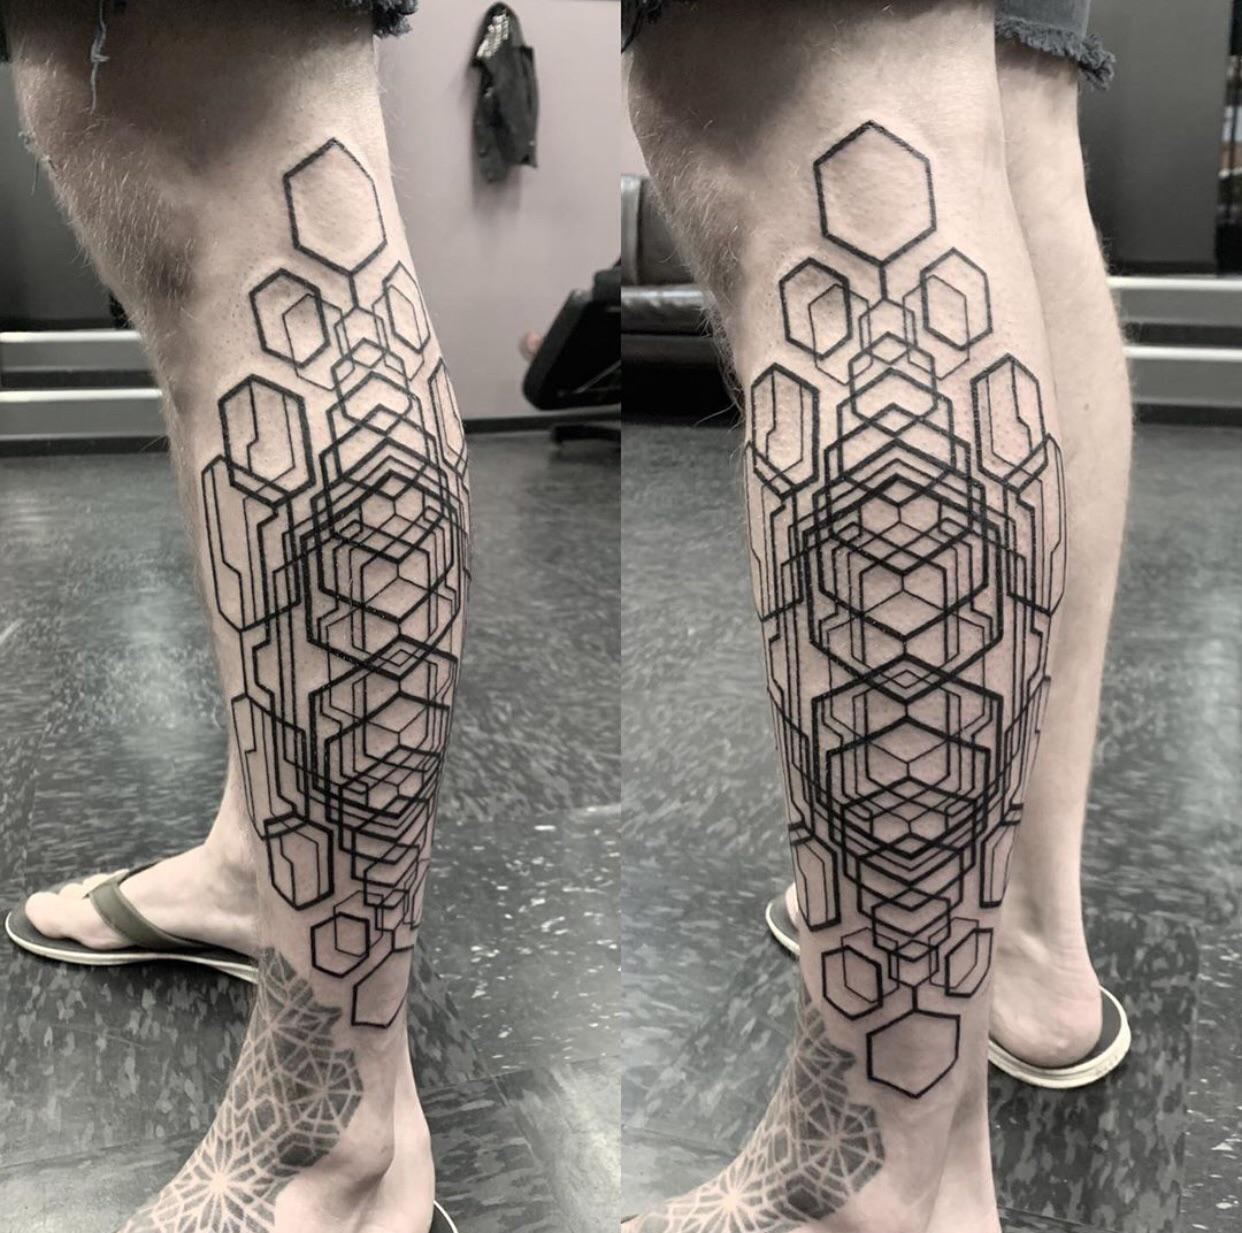 Geometric leg panel by Cassady Bell at Side Show Alley in Portland, OR